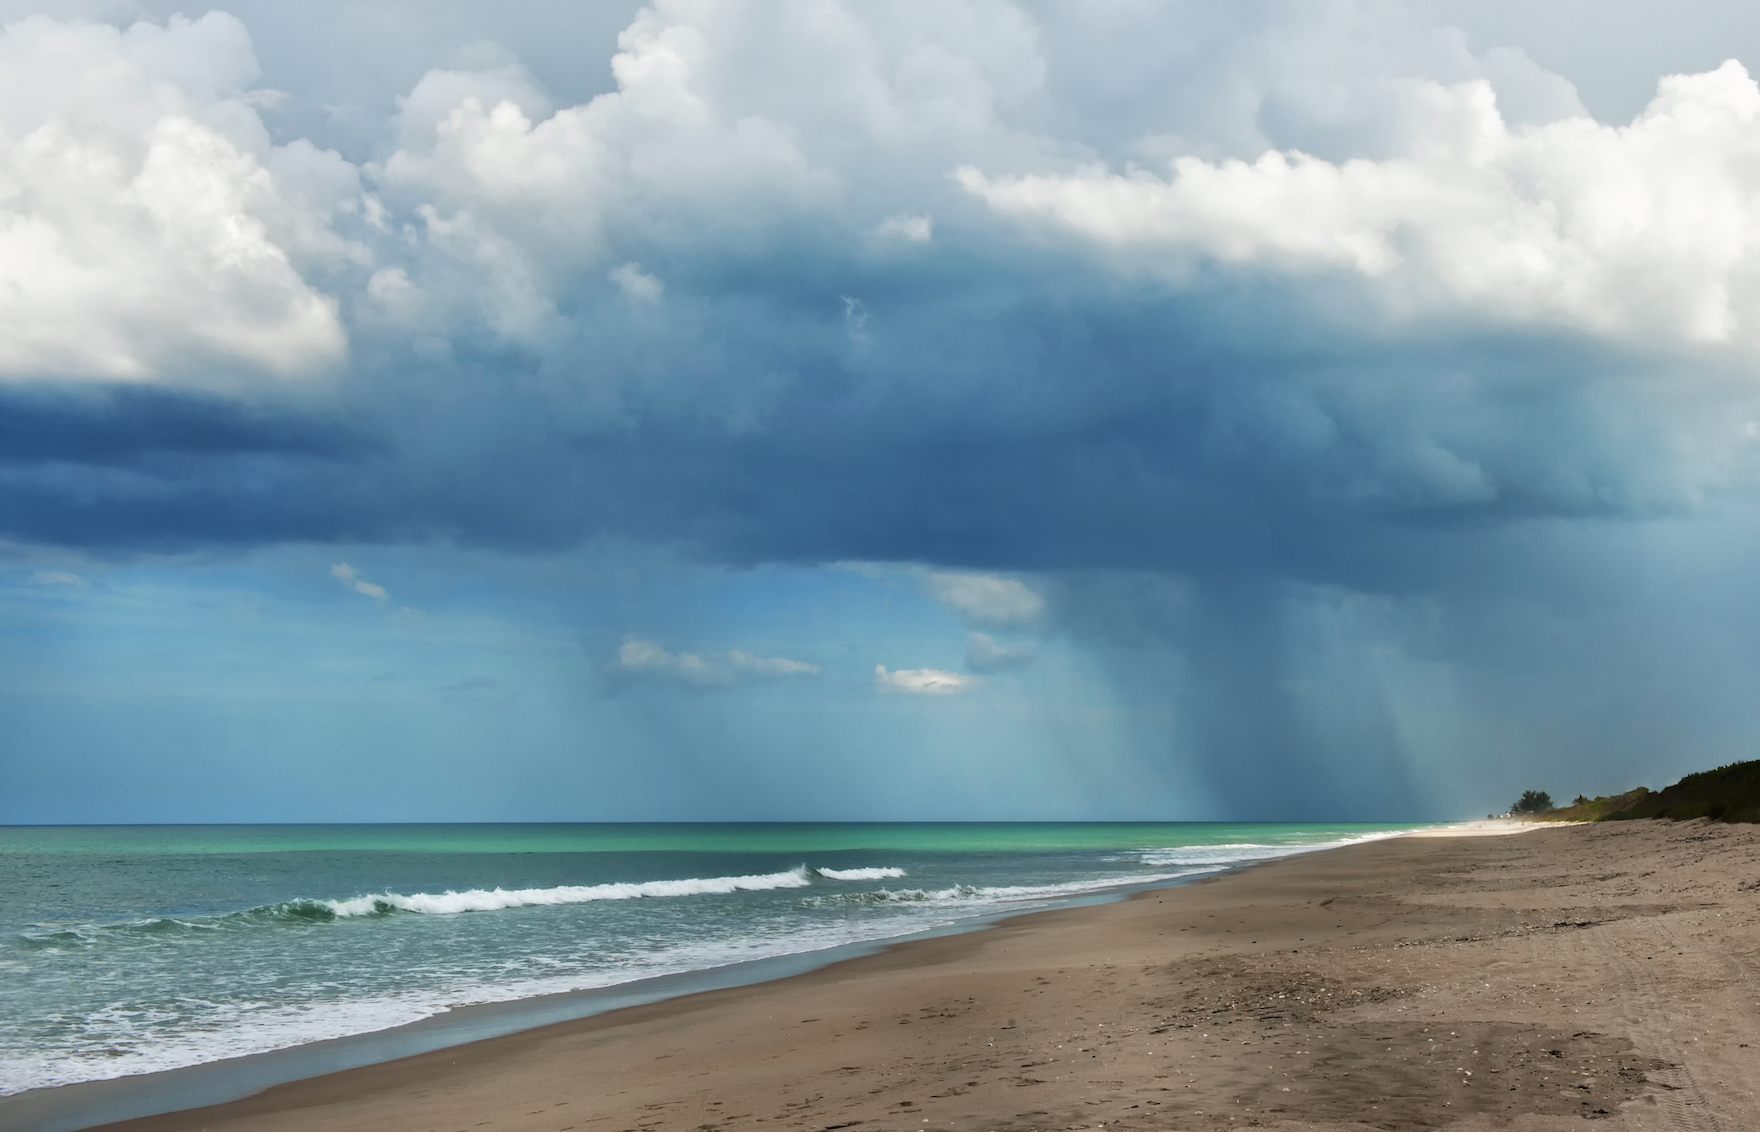 Changes in the circulation of the Atlantic Ocean have influenced rainfall in the Western Hemisphere for thousands of years.